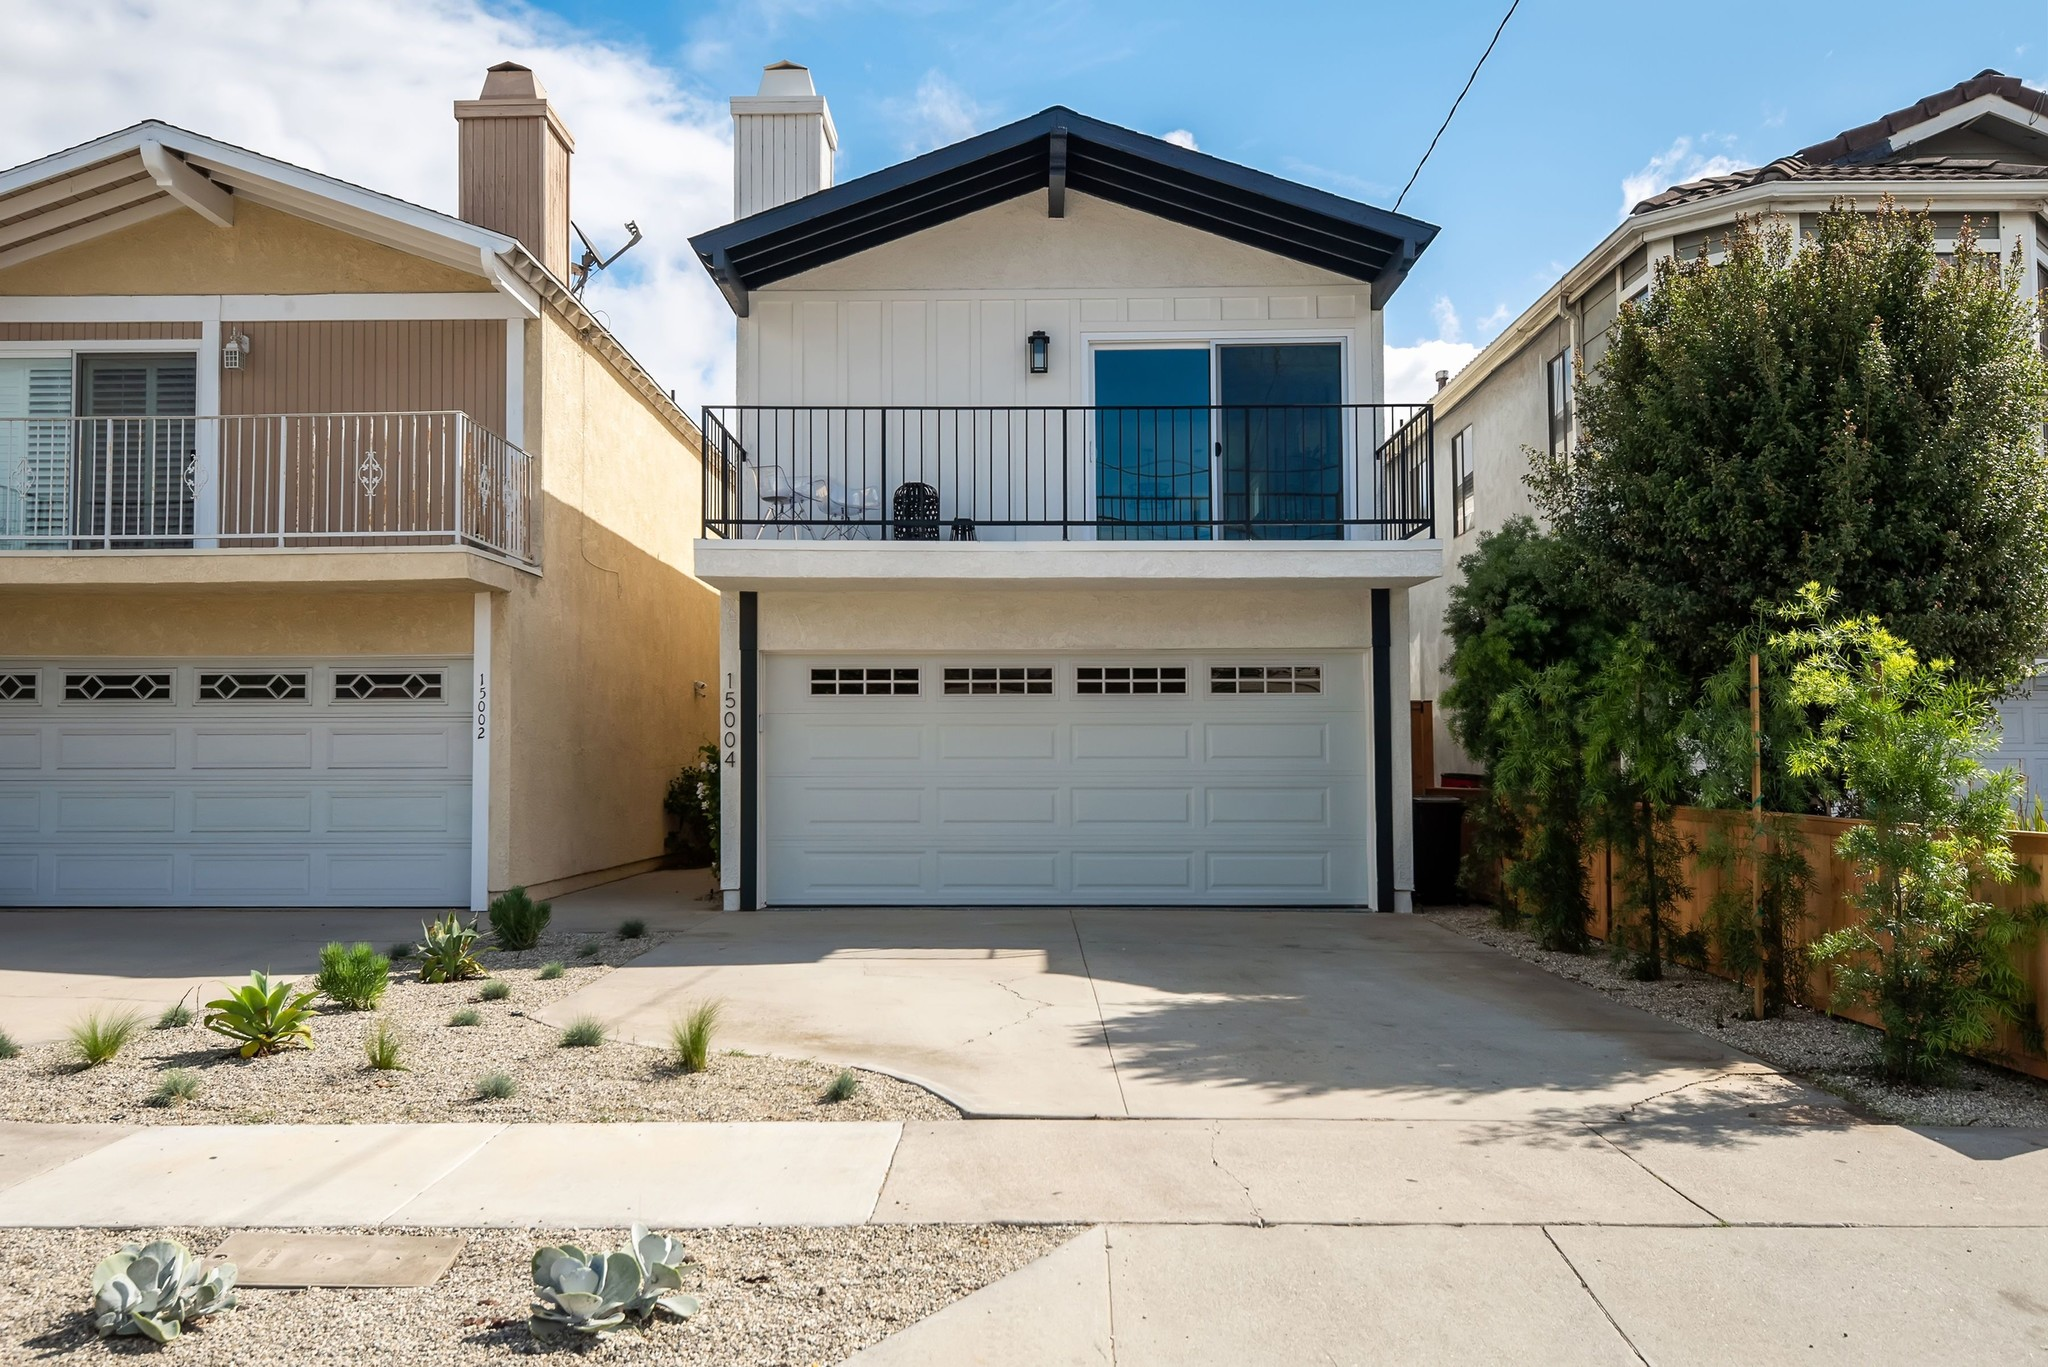 Chic 3-Bedroom House In Lawndale